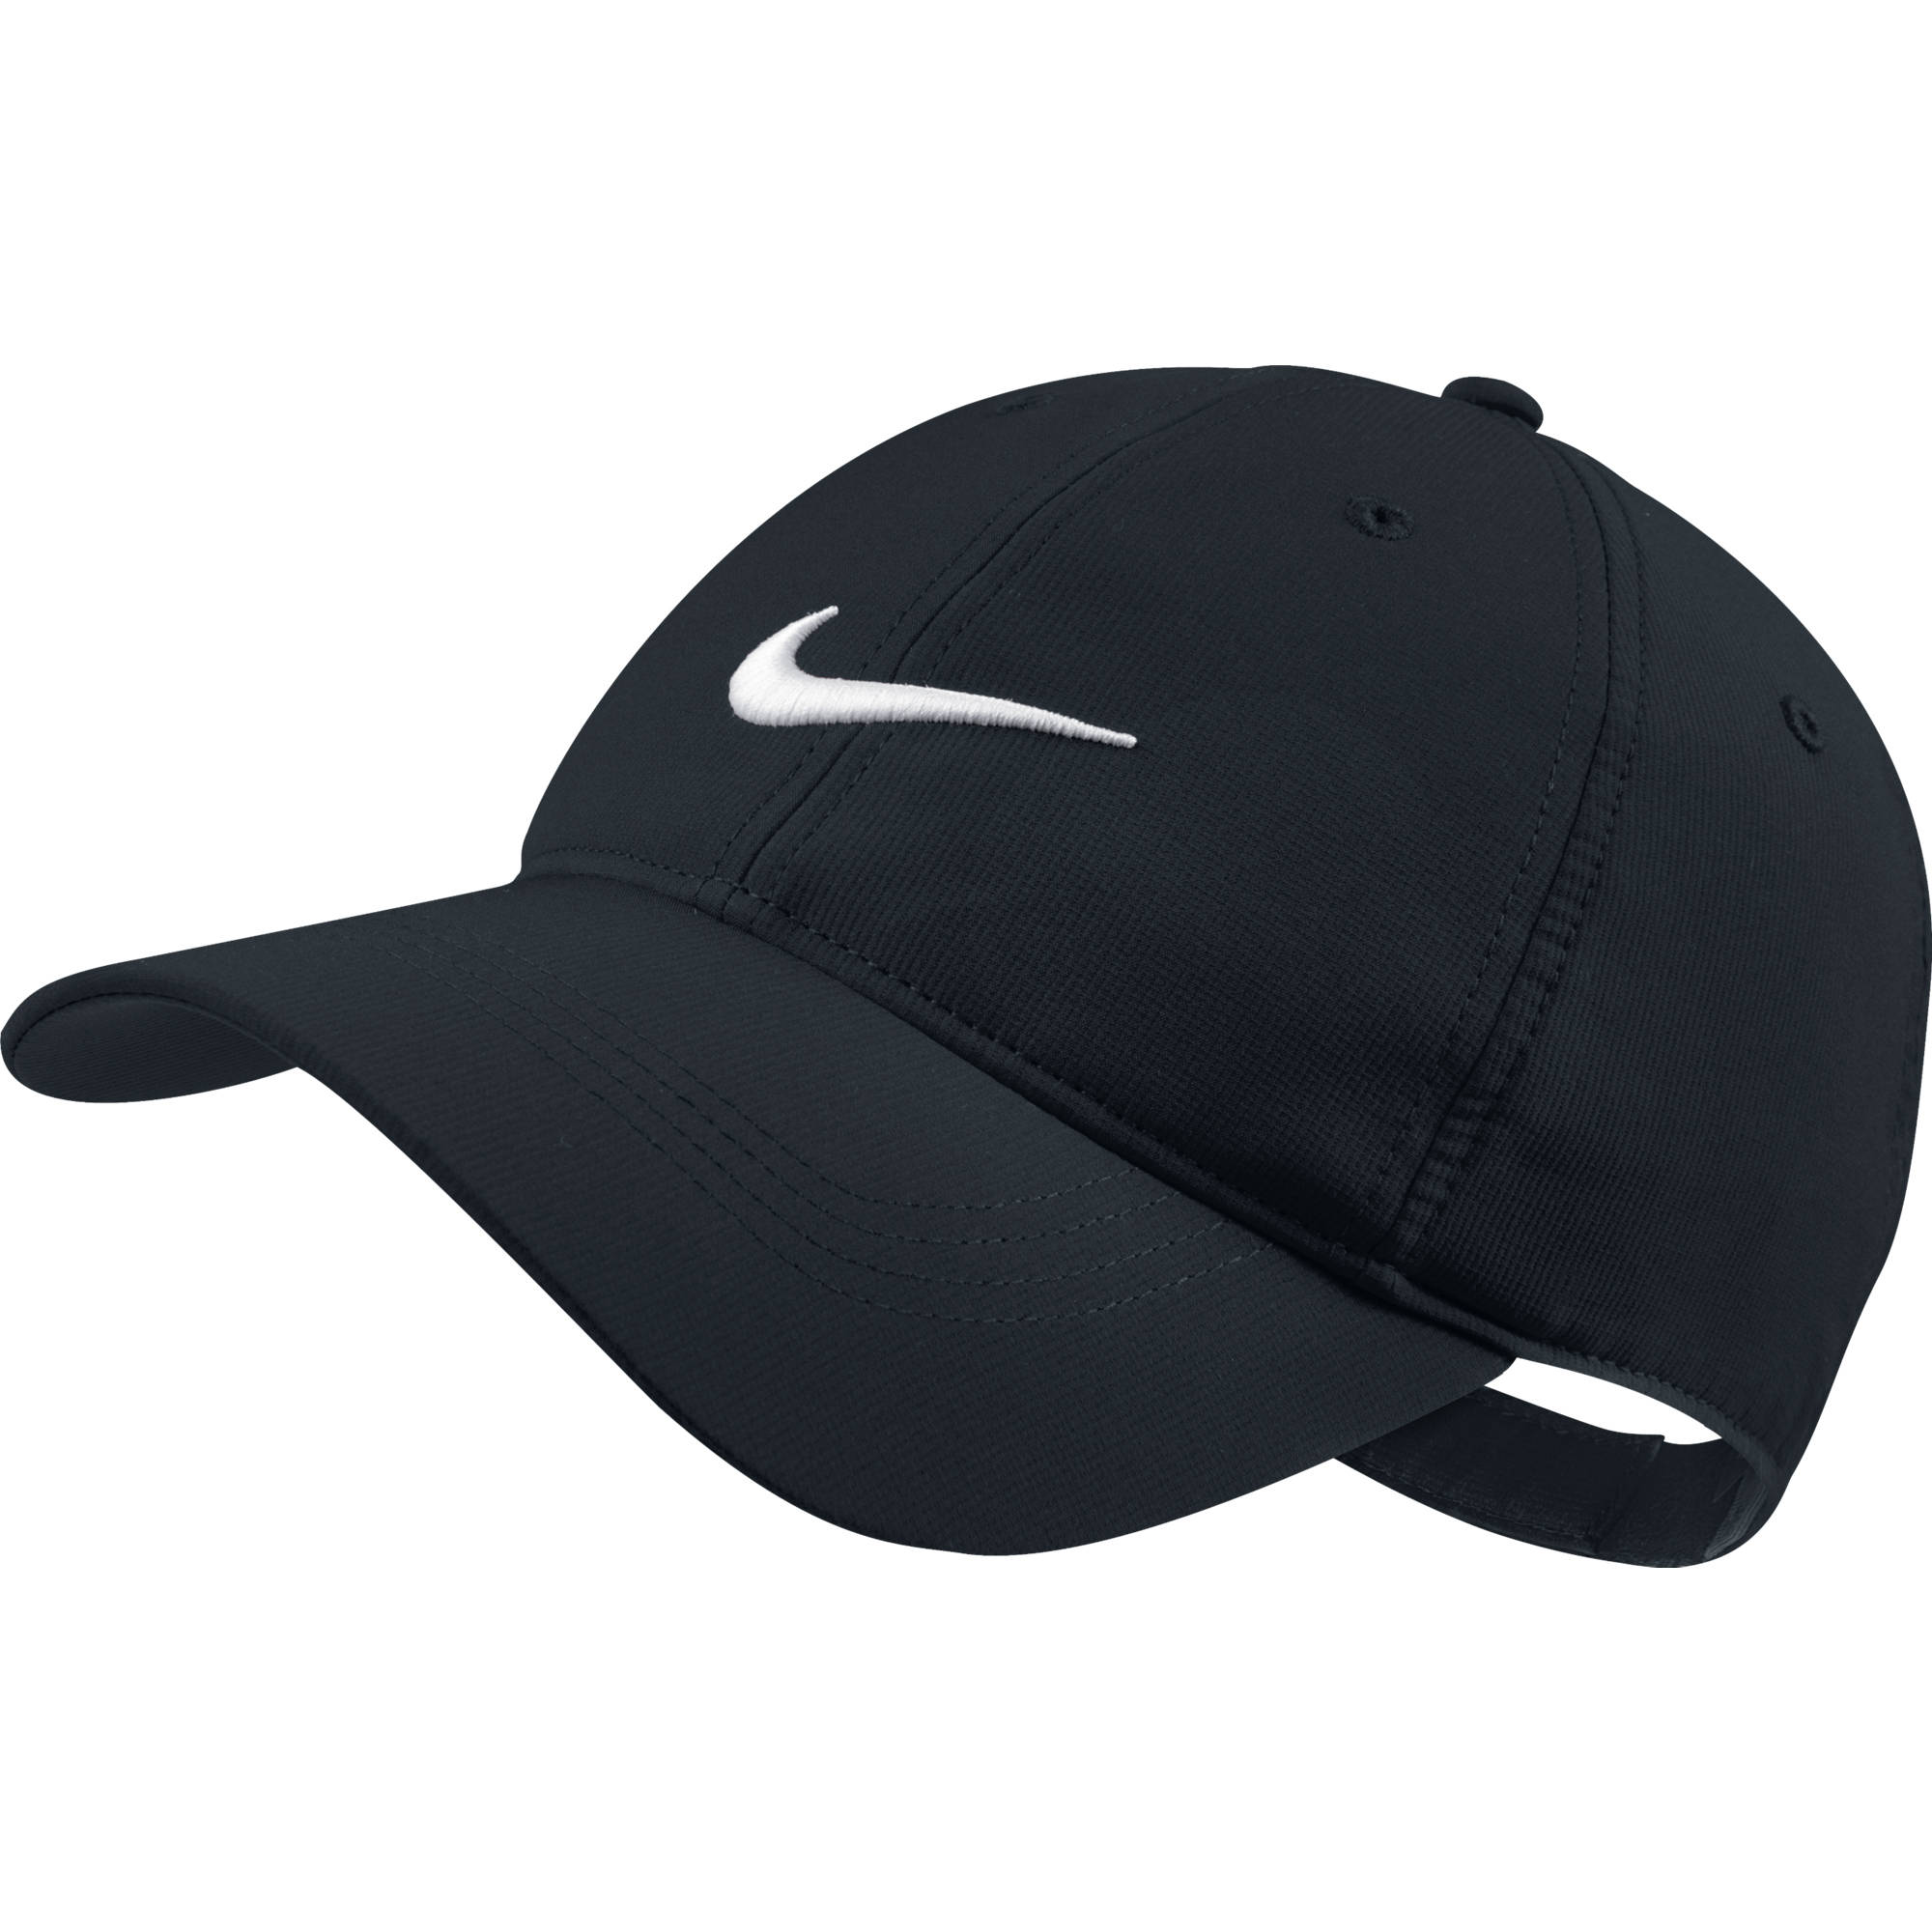 00c2eb84d9a Nike Men's Tech Swoosh Adjustable Cap, Black - Walmart.com